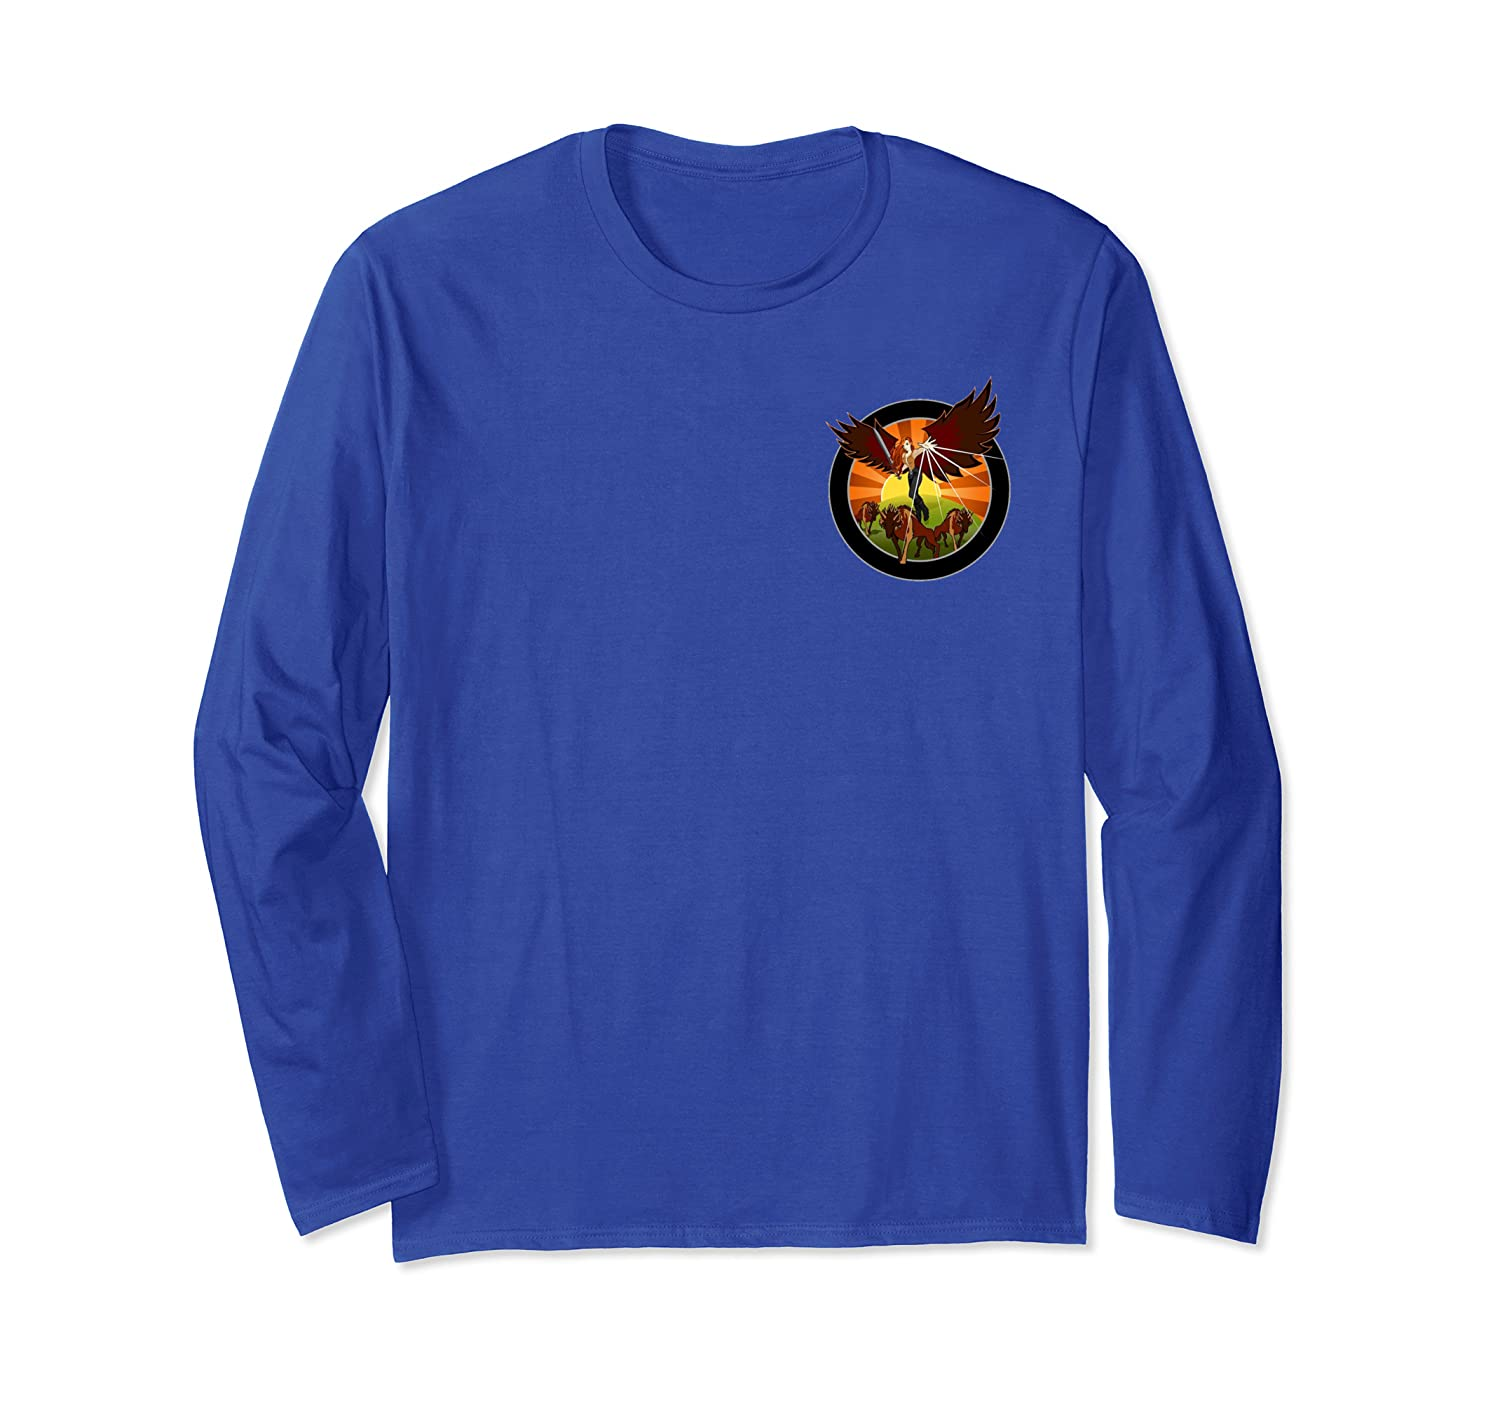 Quasar NRO L-33 USA-252 Satellite Launch Patch Long Sleeve